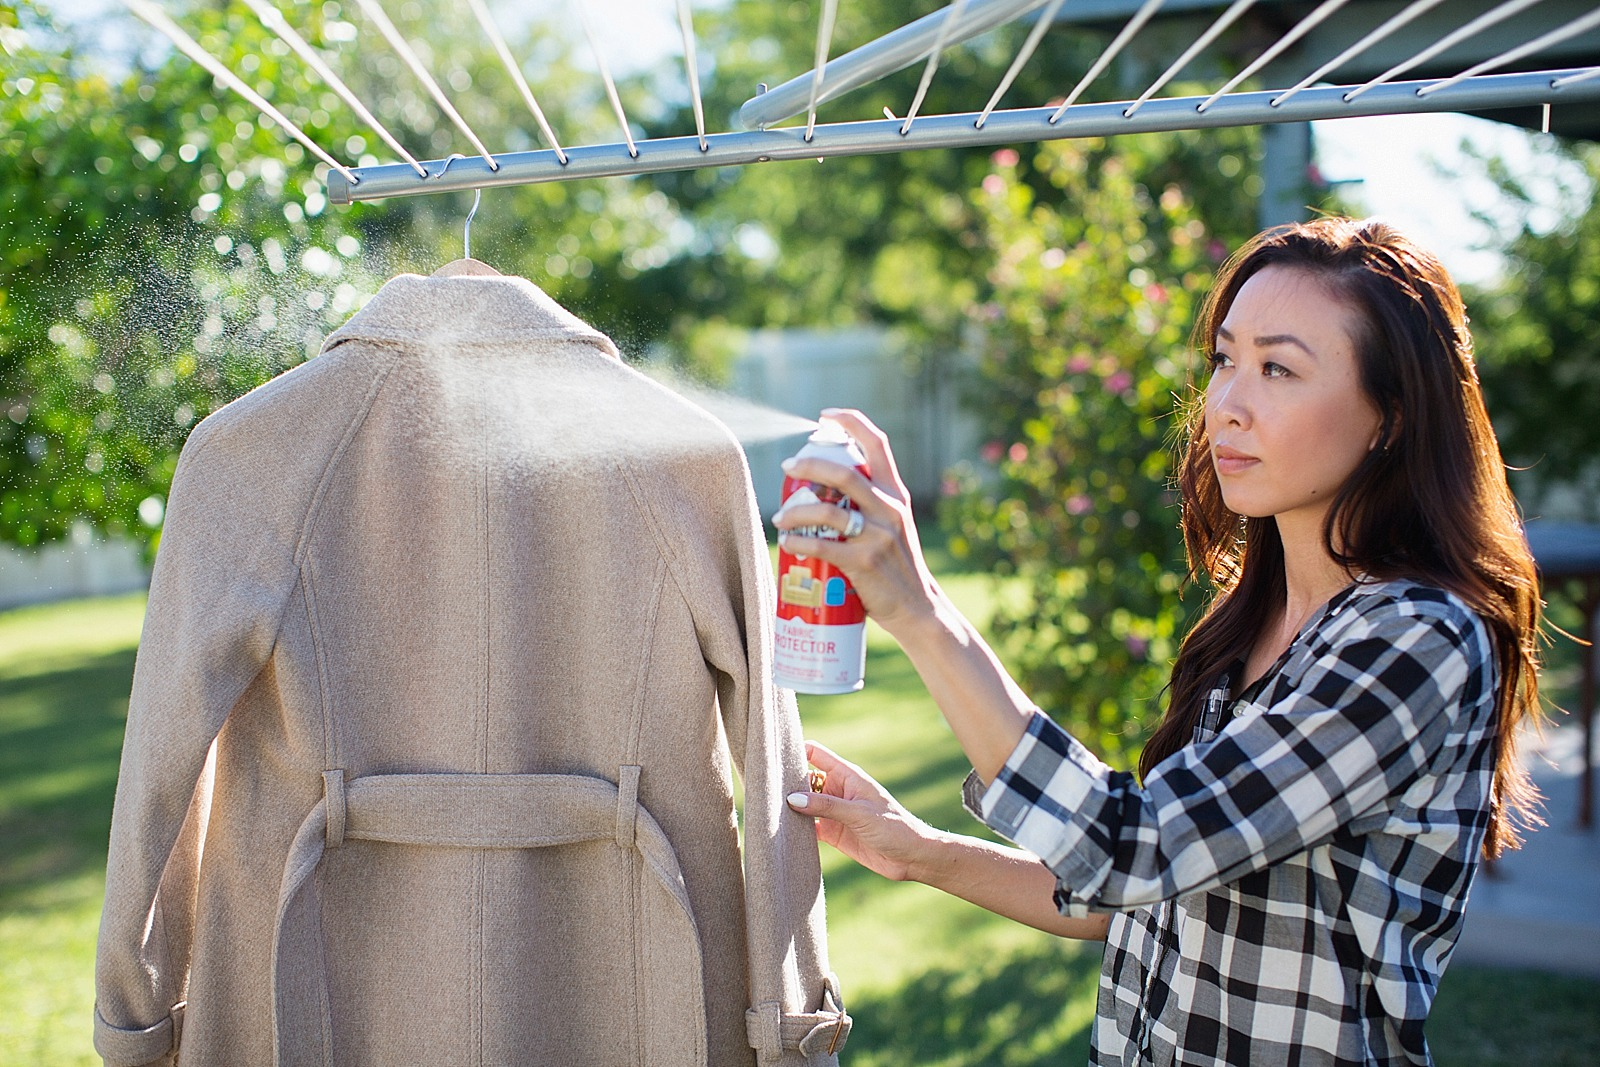 scotchgard-diana-elizabeth-home-protect-household-couch-spray-how-to-fall-winter-1273